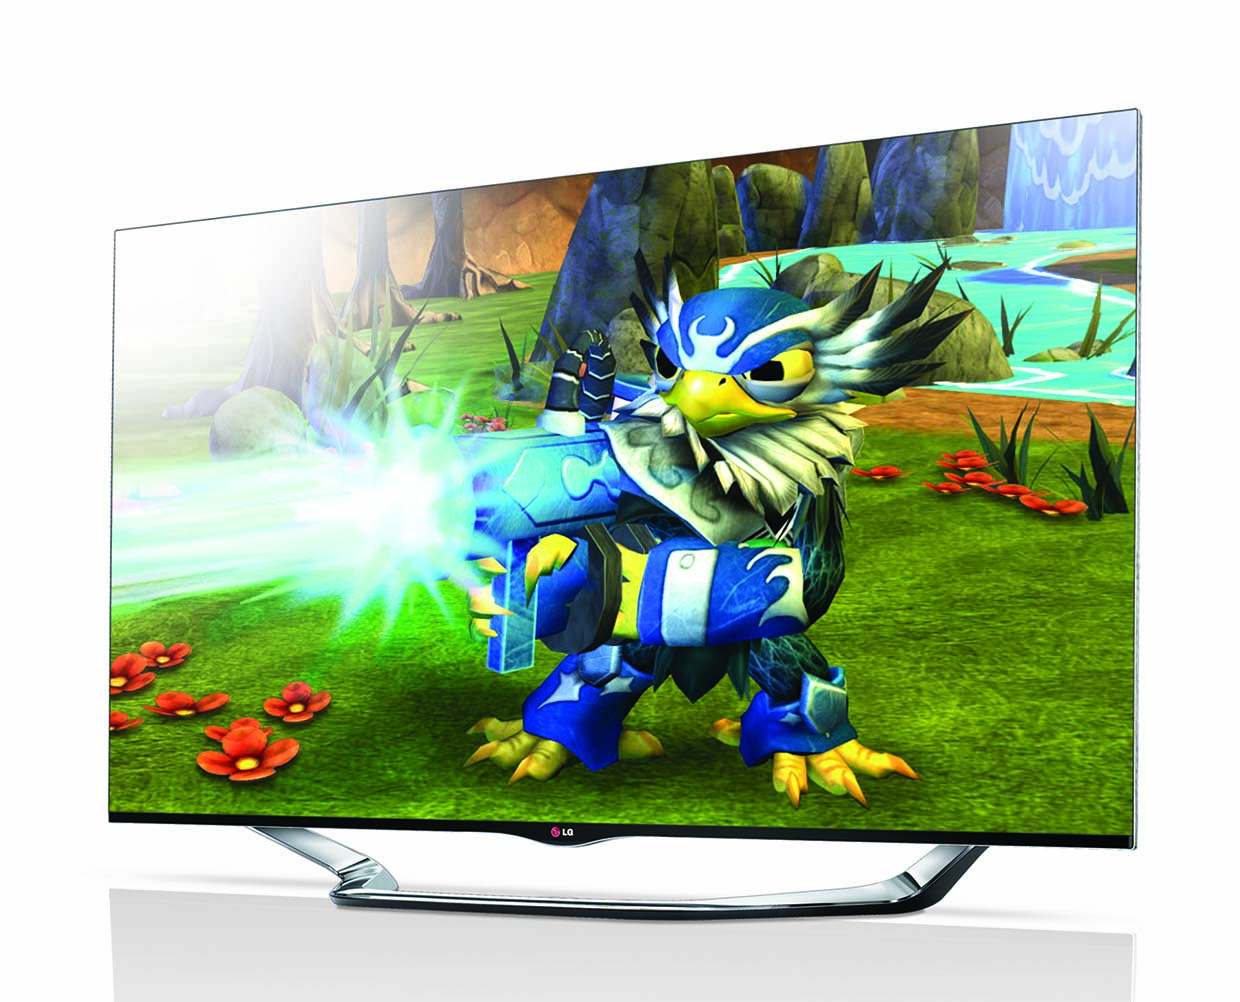 LG brings limited edition 'Skylanders Battlegrounds' bundle to Smart TVs